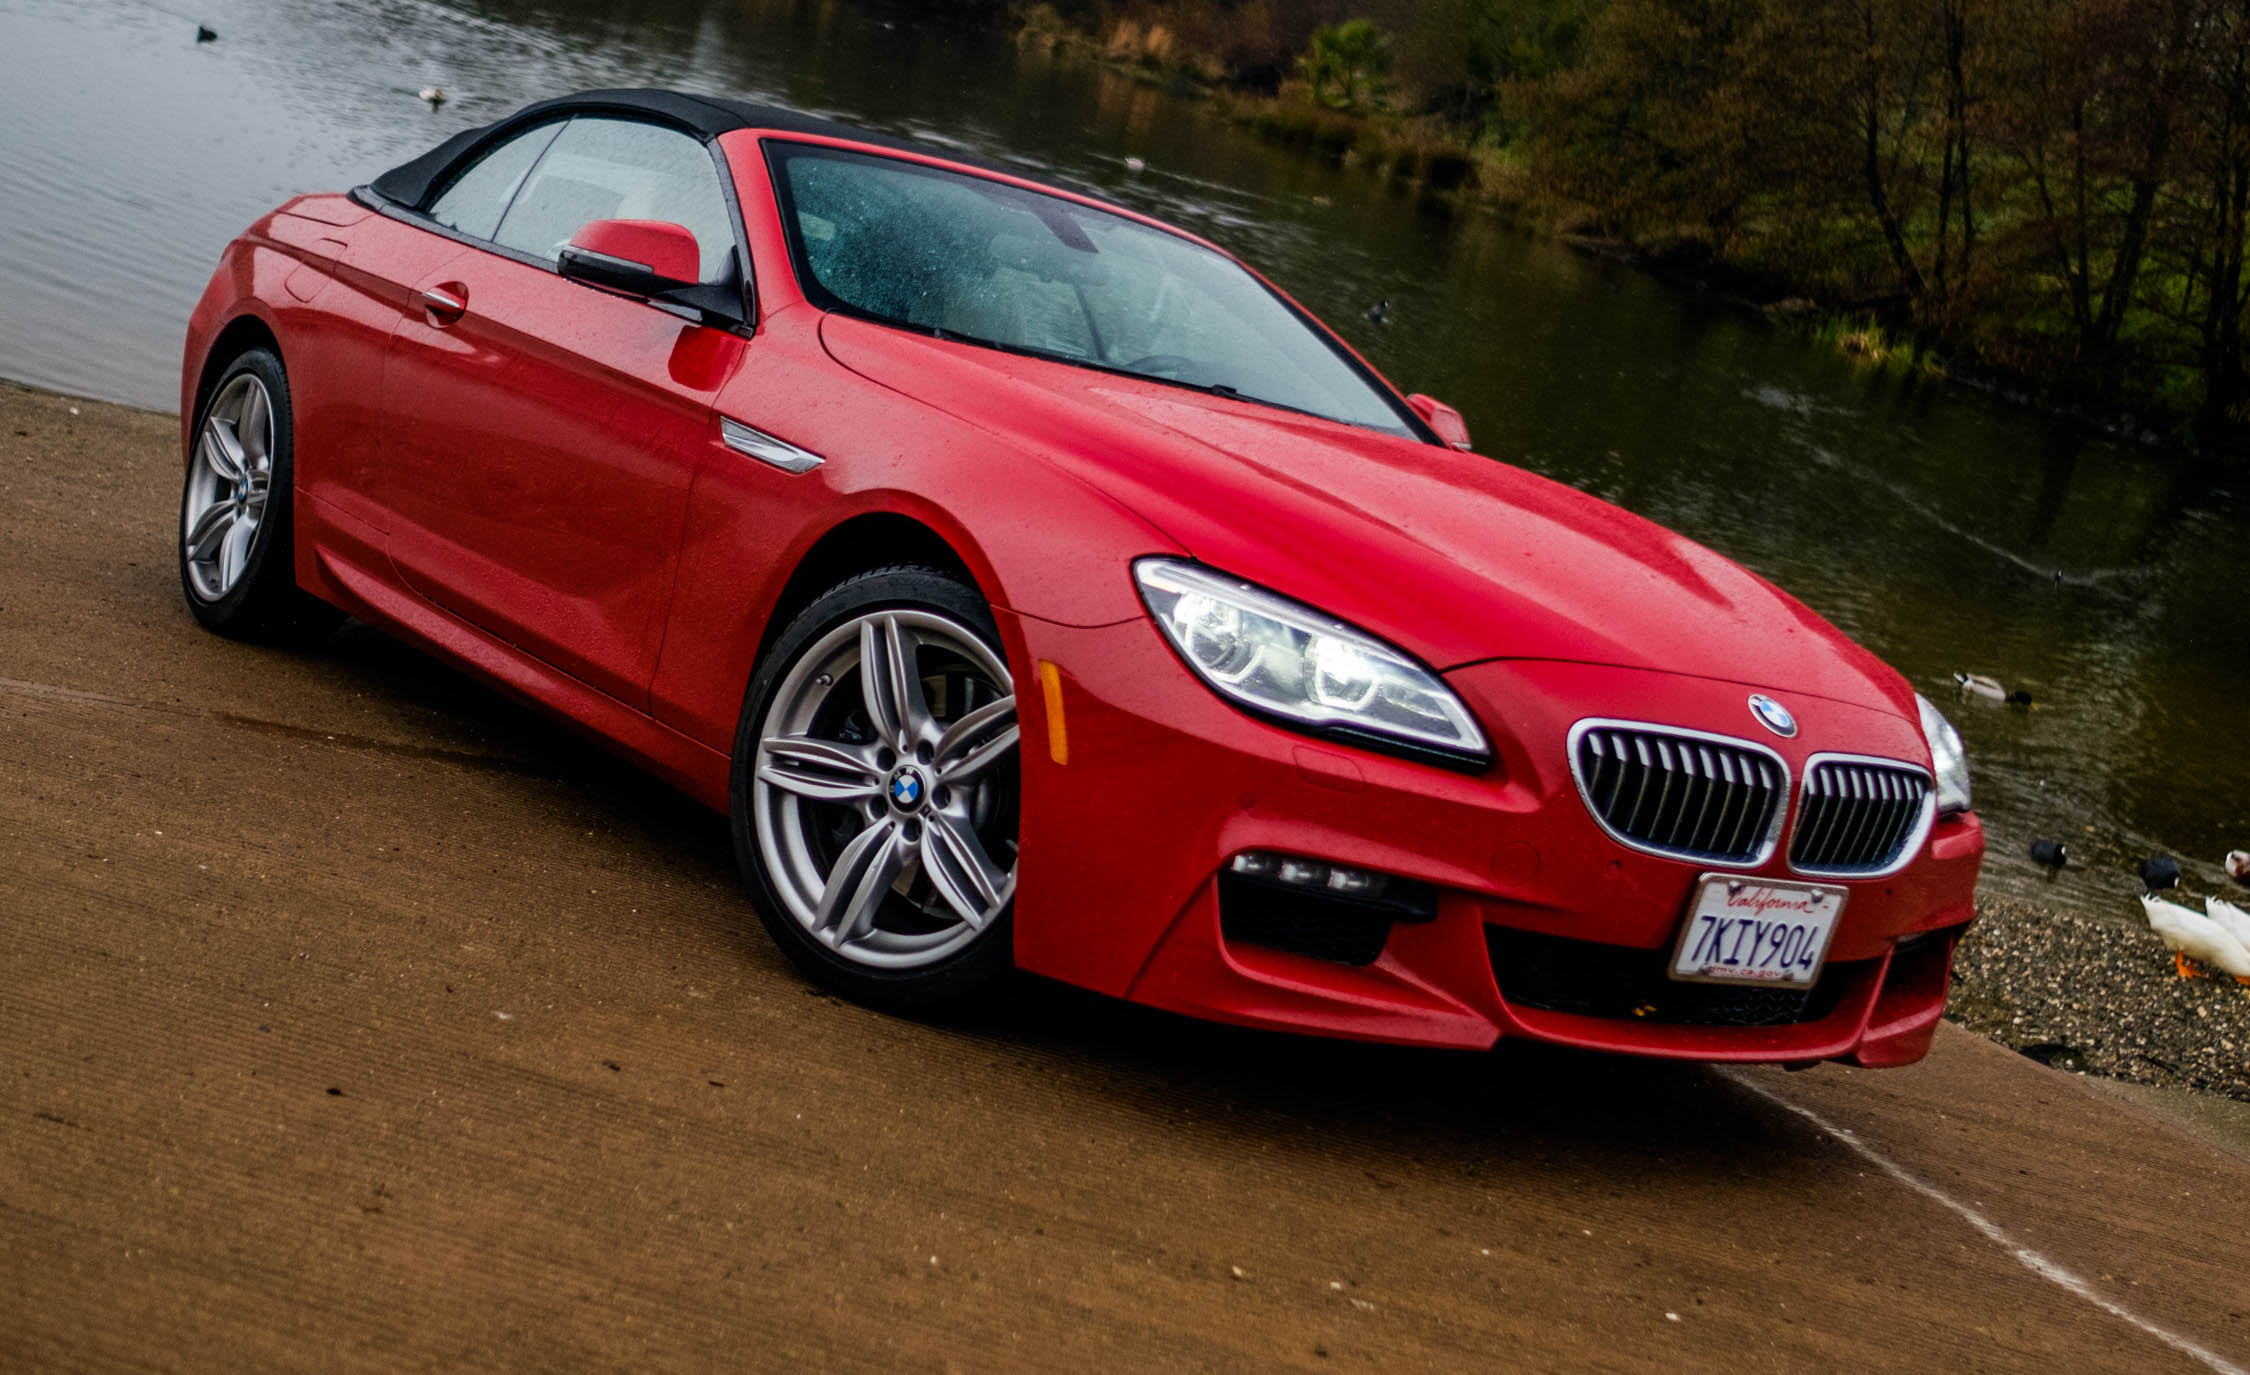 2016 BMW 640i Convertible Exterior Full Front and Side